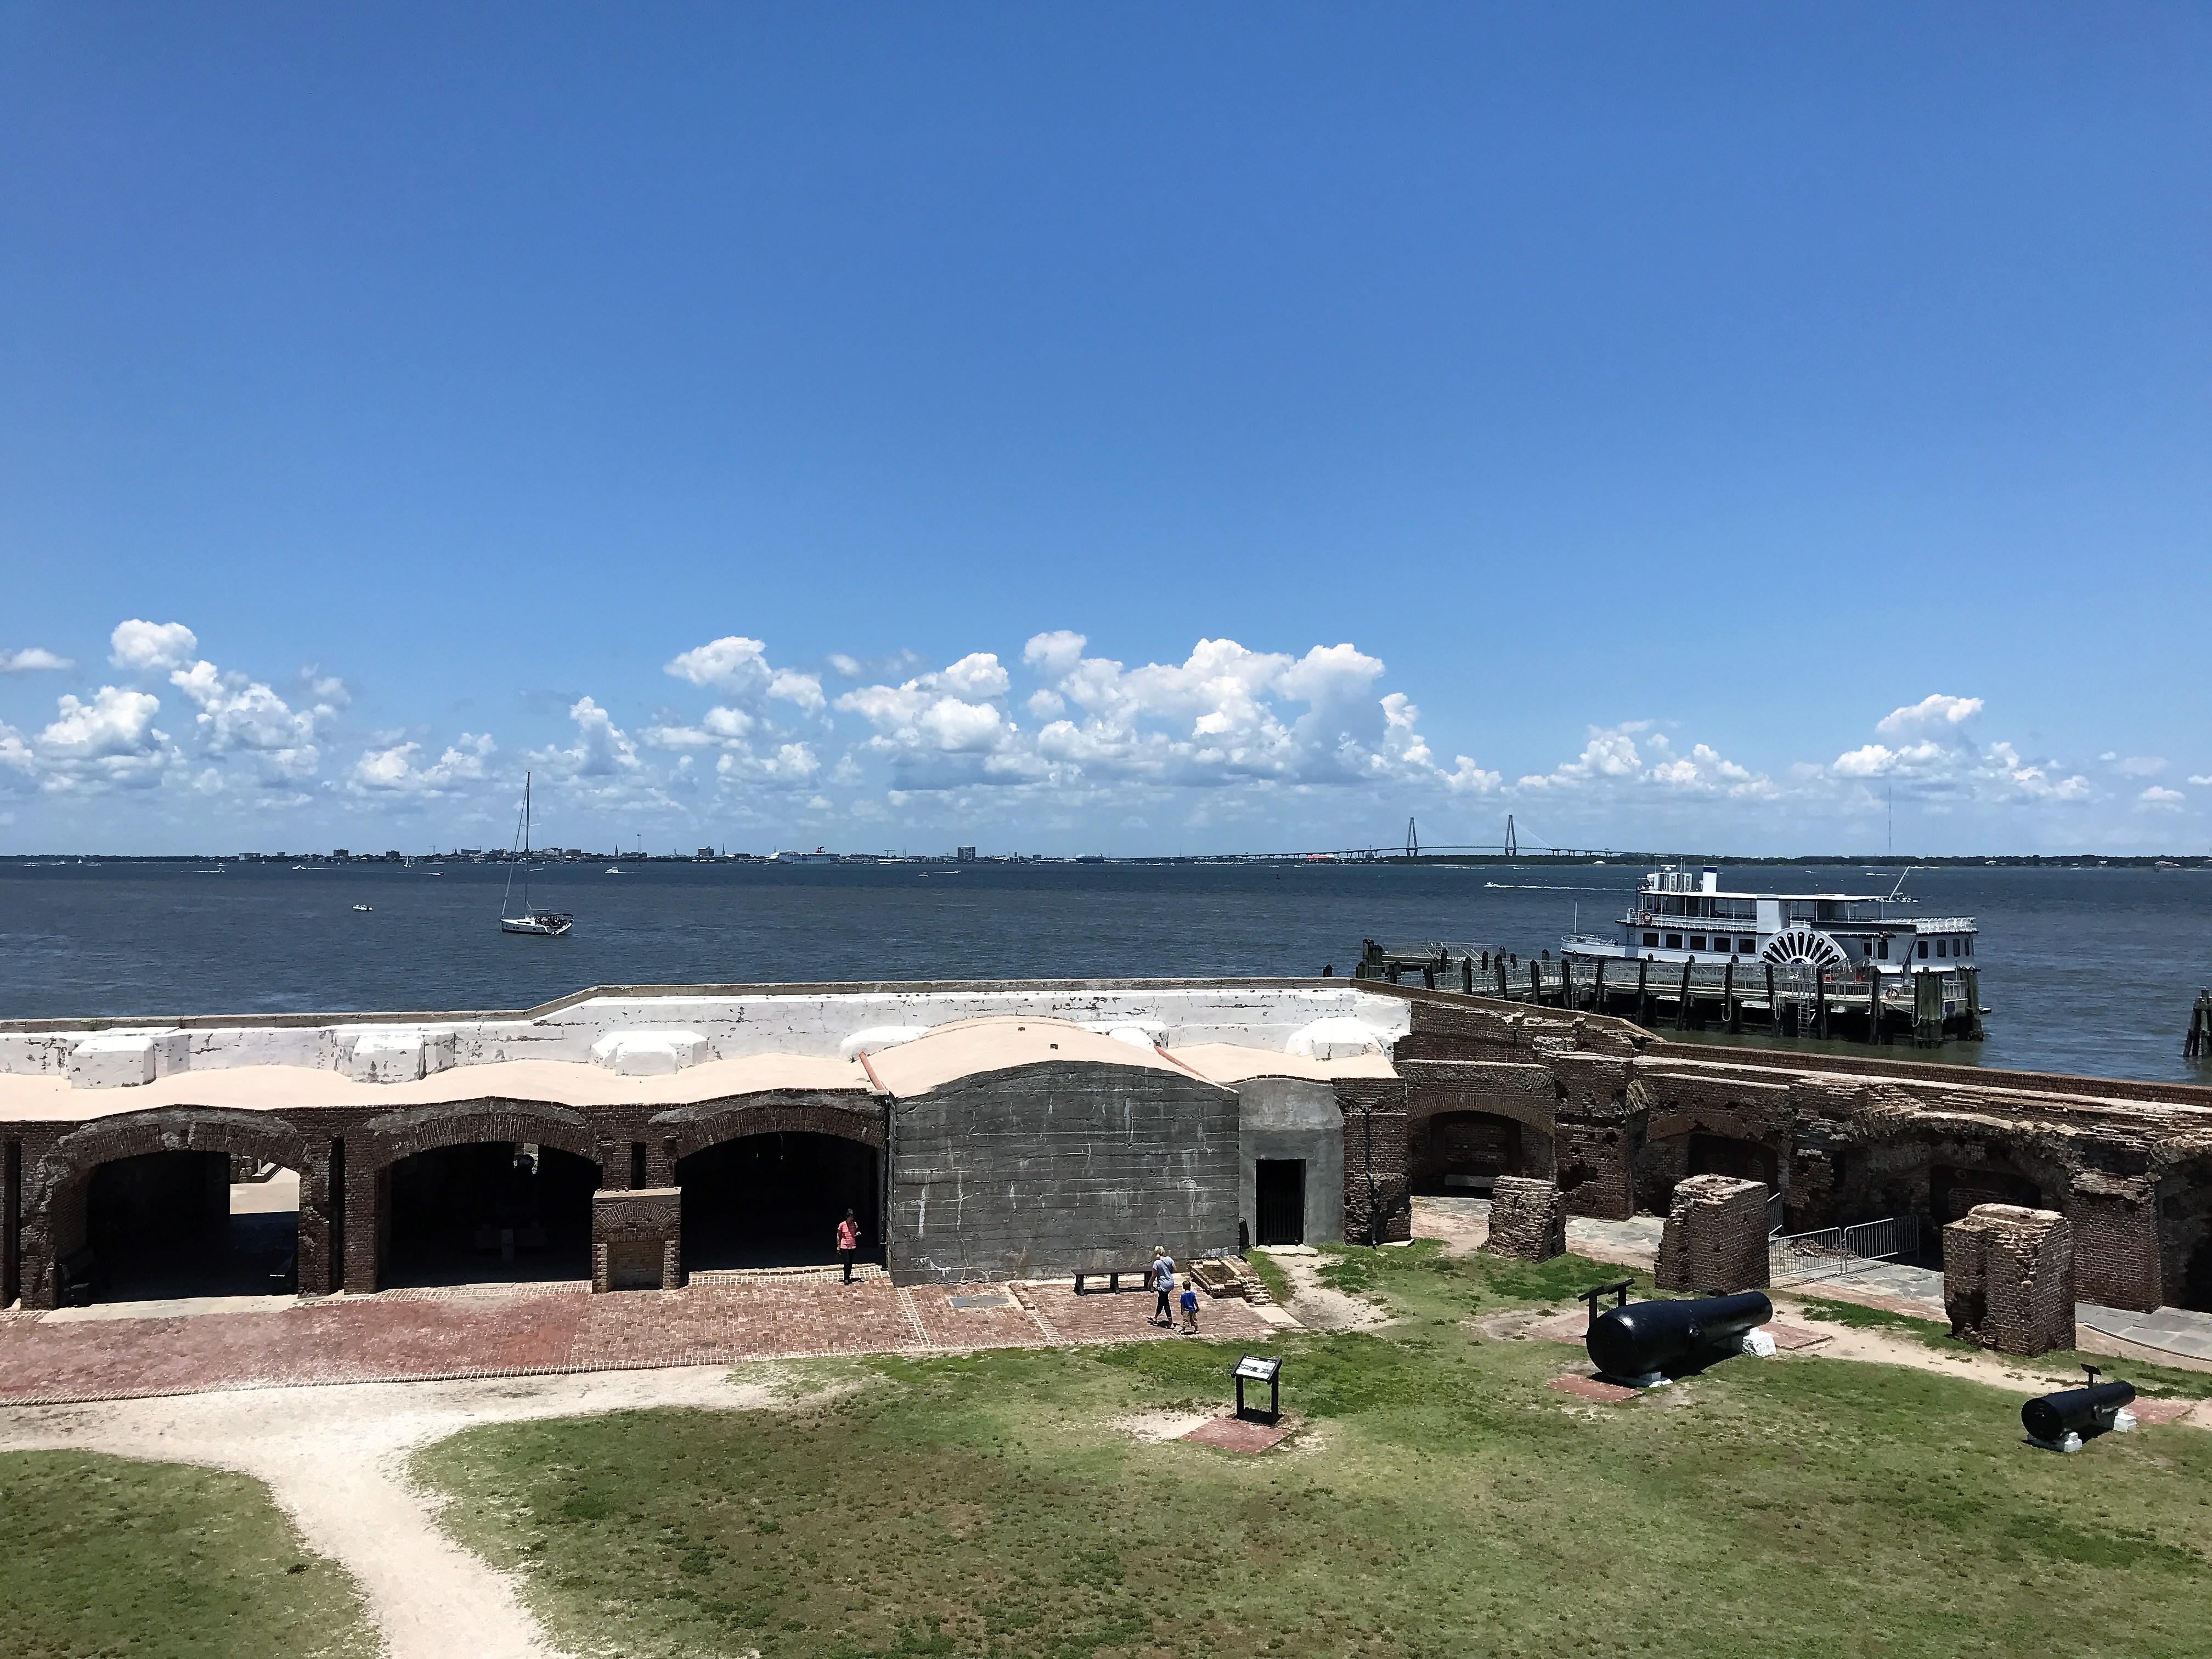 Fort Sumter Outdoor Activities Charleston things to do vacation